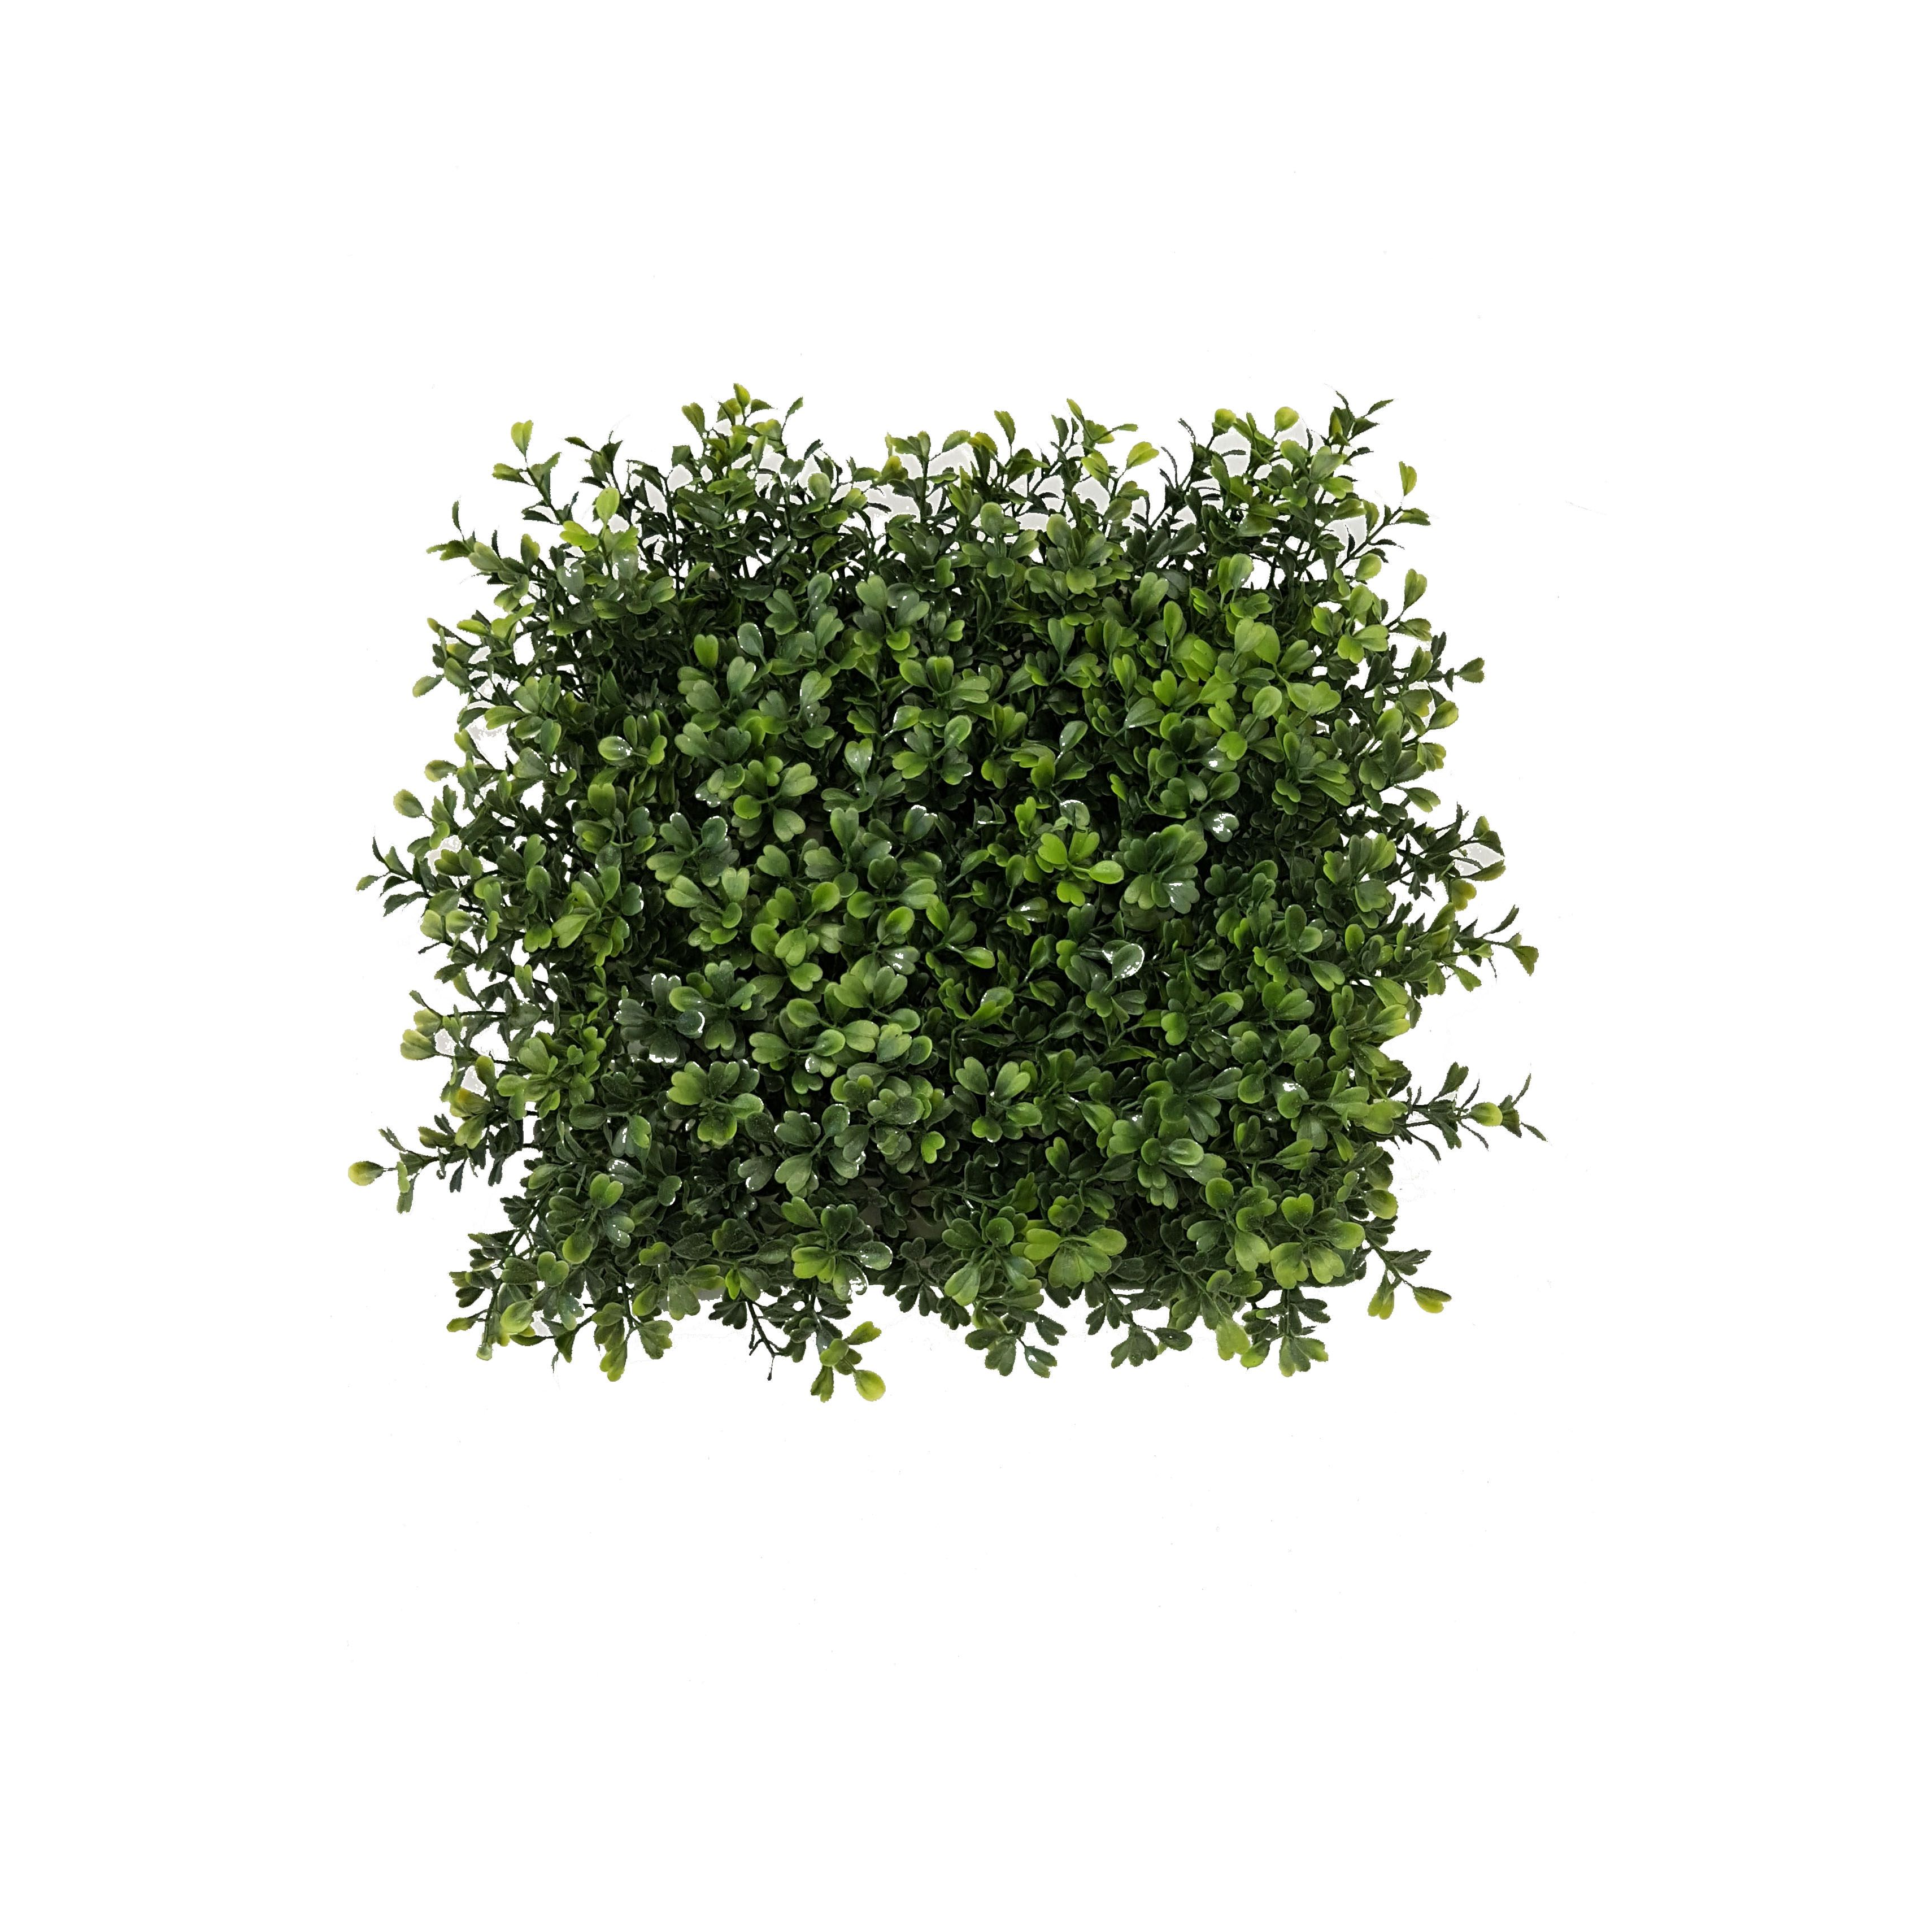 DELUXE BOXWOOD HEDGE 45CM TALL x 1M WIDE | Wyer Haus Bar | Pinterest ...